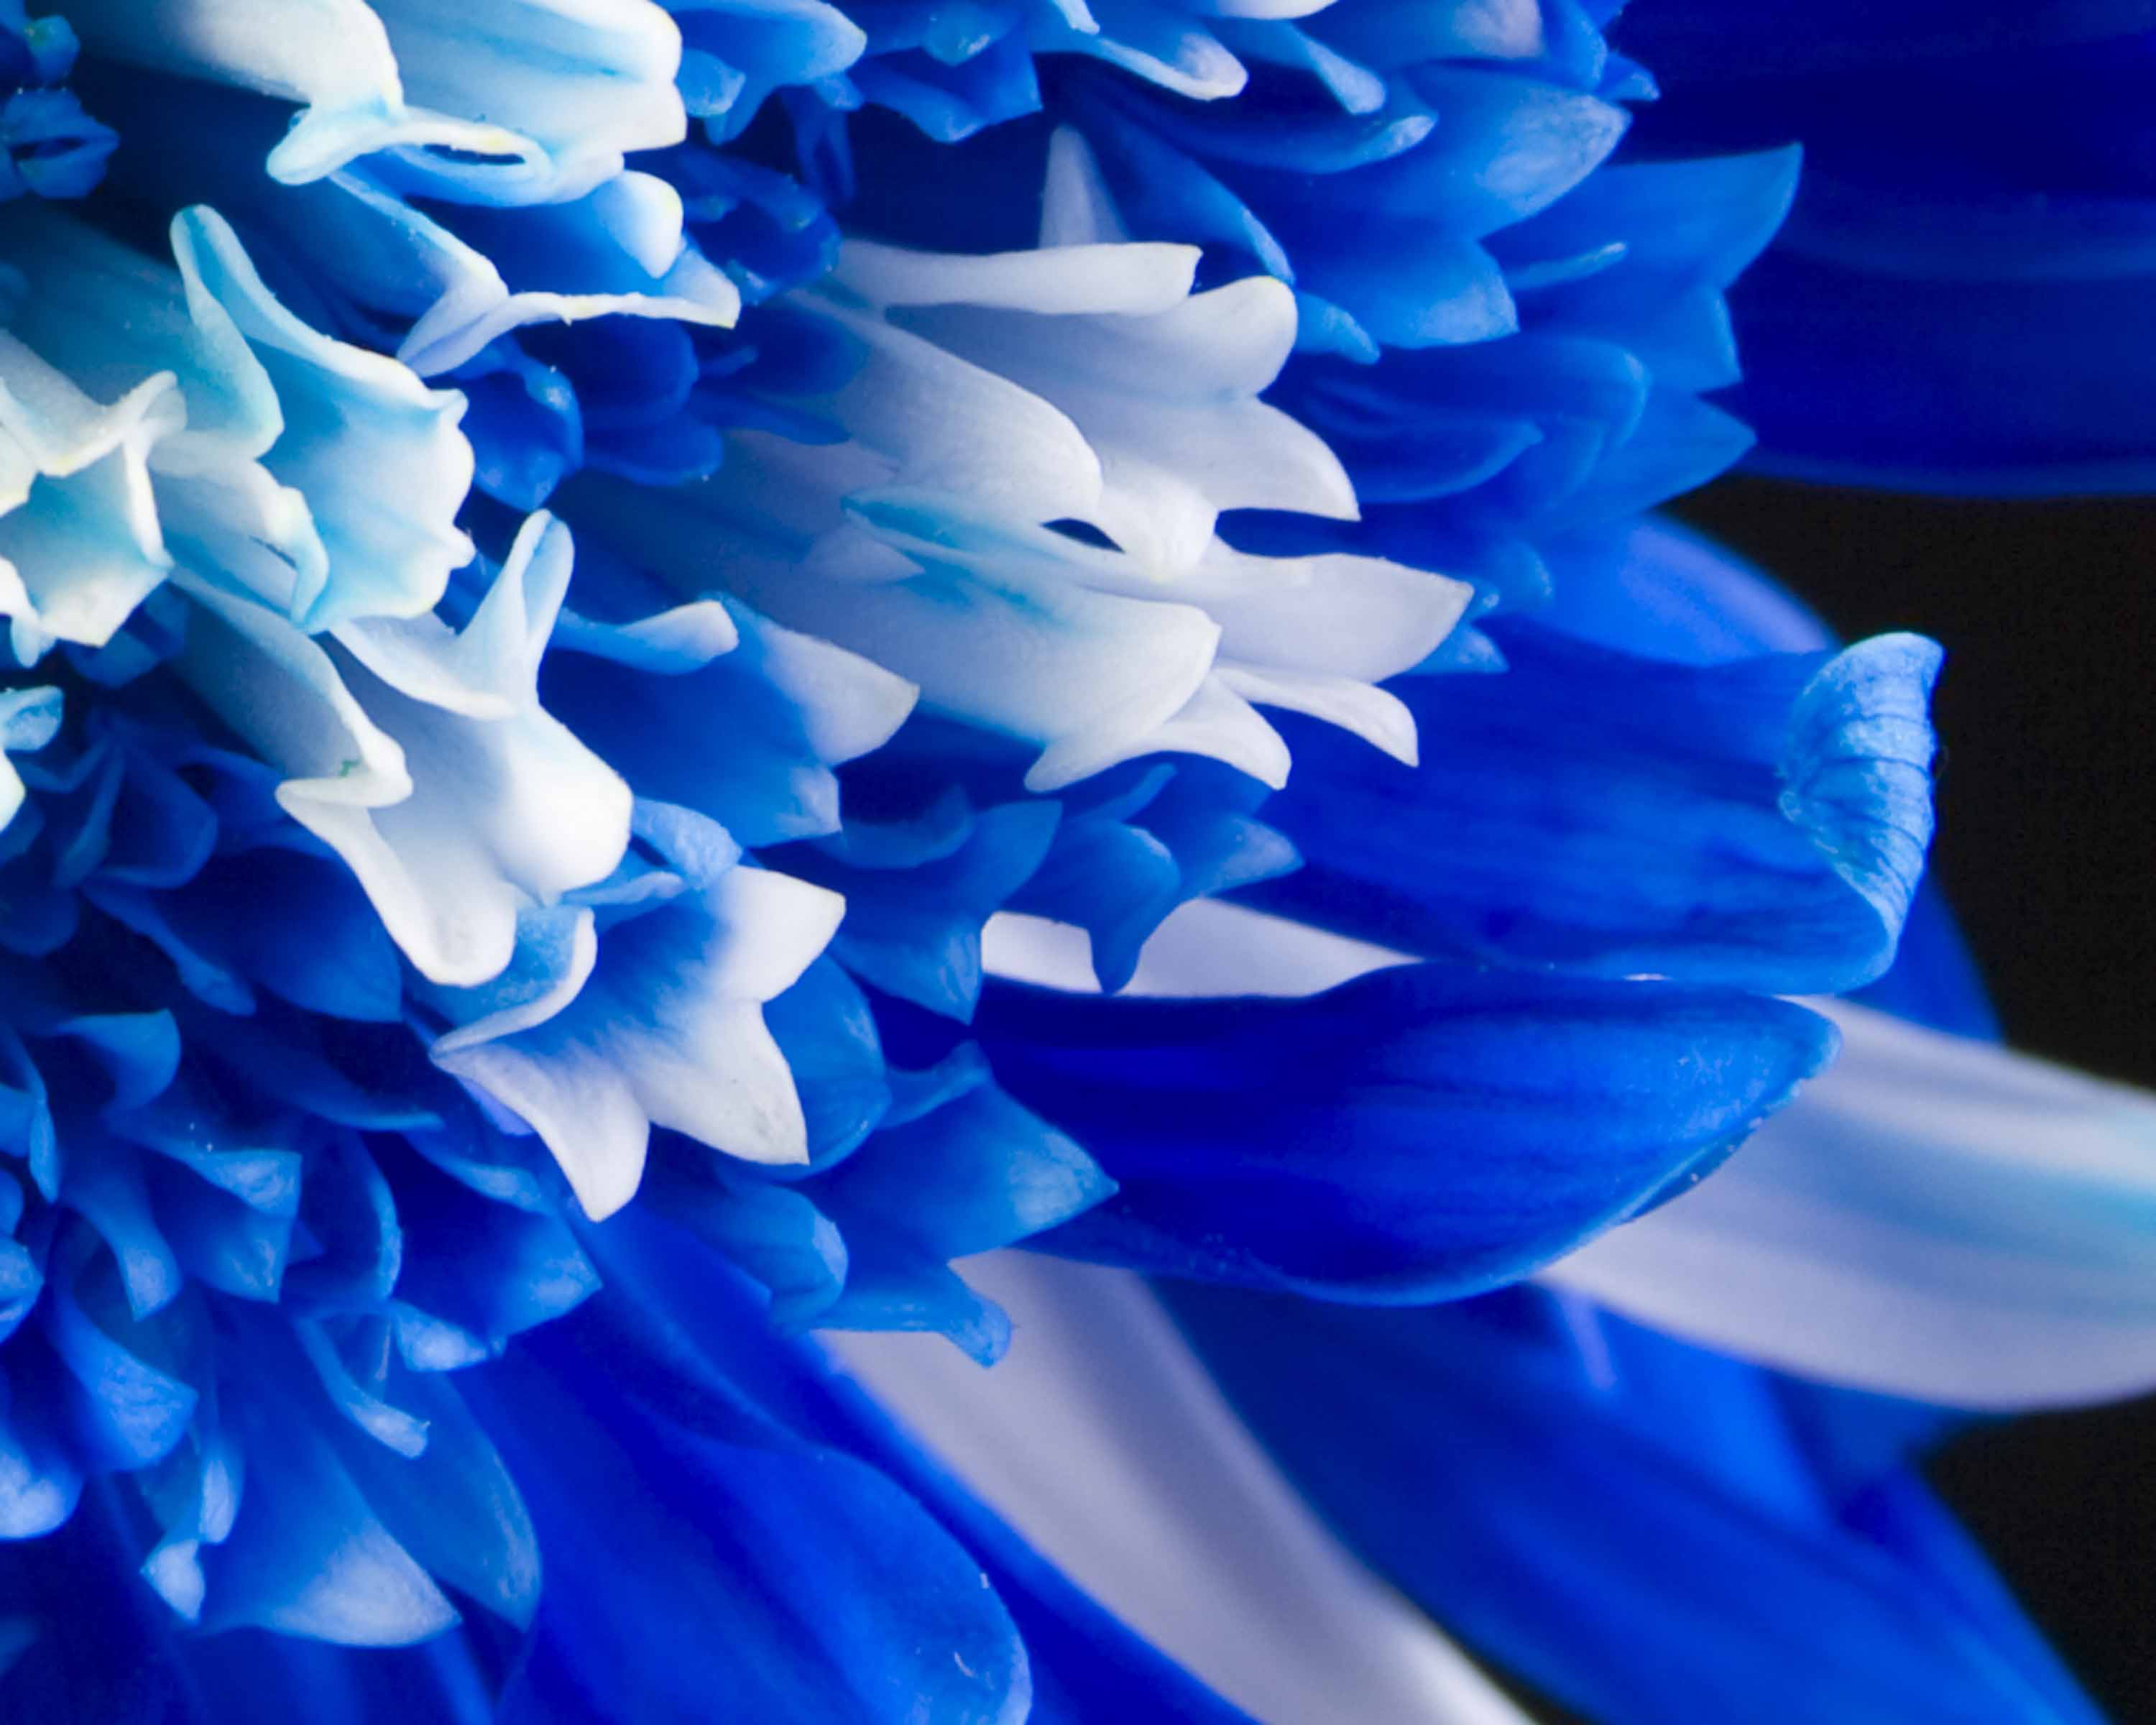 Blue flowers wallpapers wallpaper cave blue flowers pictures and names widescreen 2 hd wallpapers aduphoto izmirmasajfo